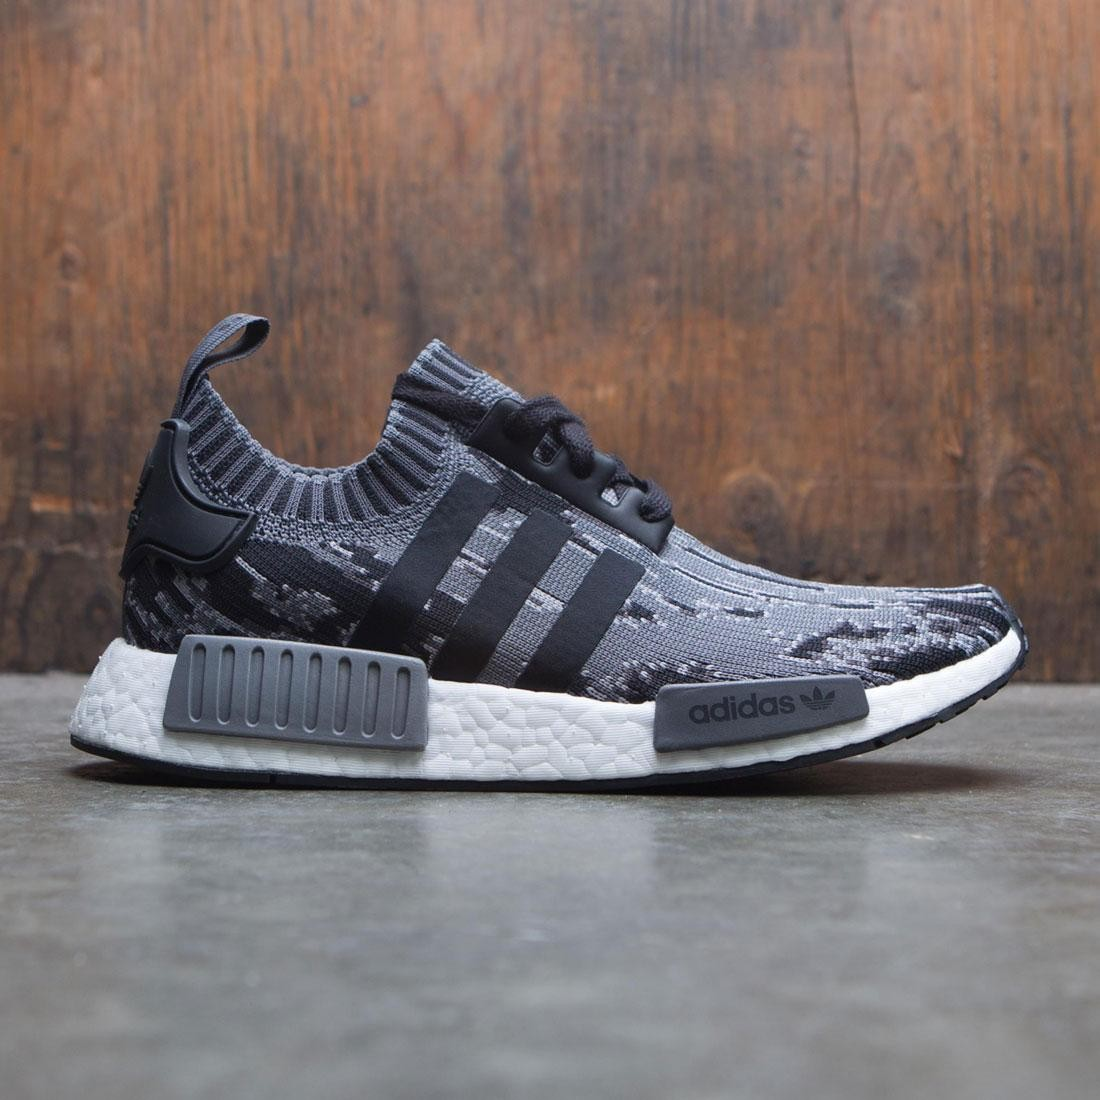 5e3da01bf Adidas Men NMD R1 Primeknit black core black grey three